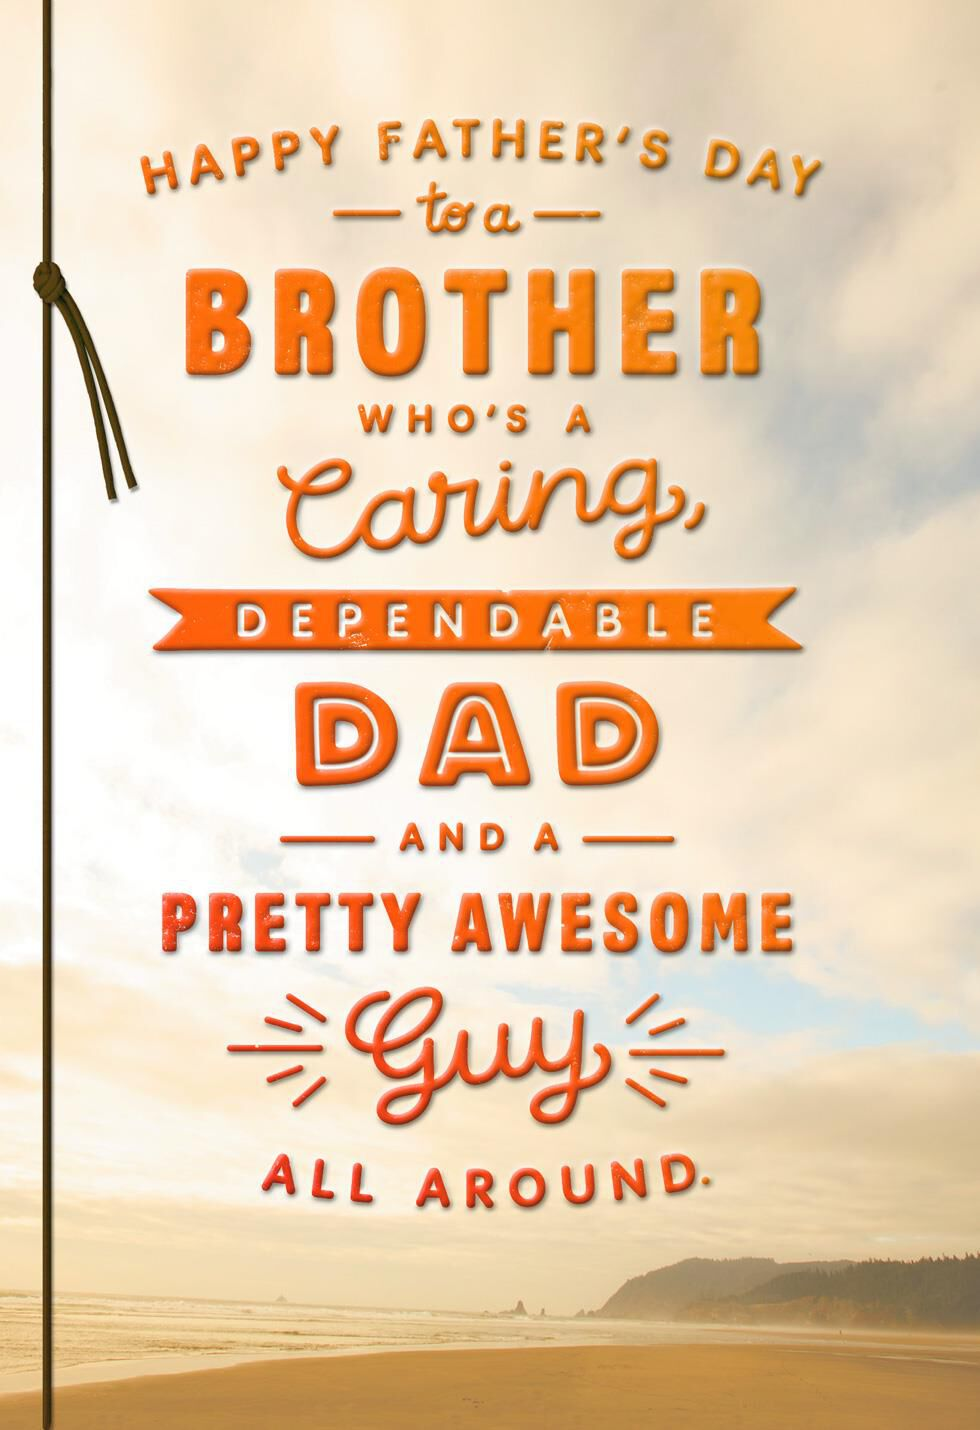 Imgenes De Happy Fathers Day Greeting For Brother